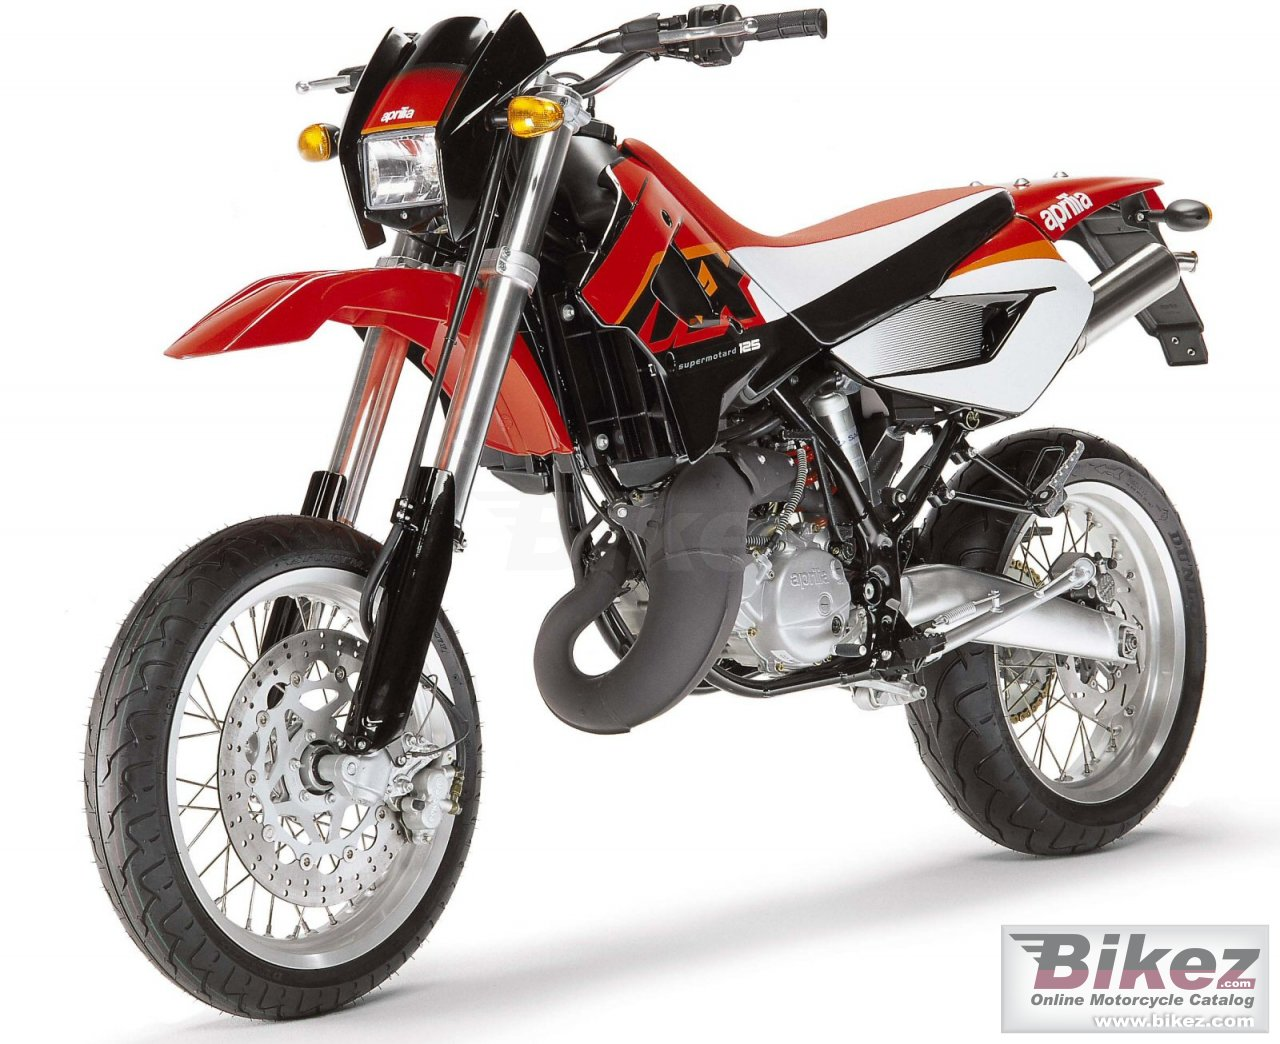 Big Aprilia mx 125 picture and wallpaper from Bikez.com